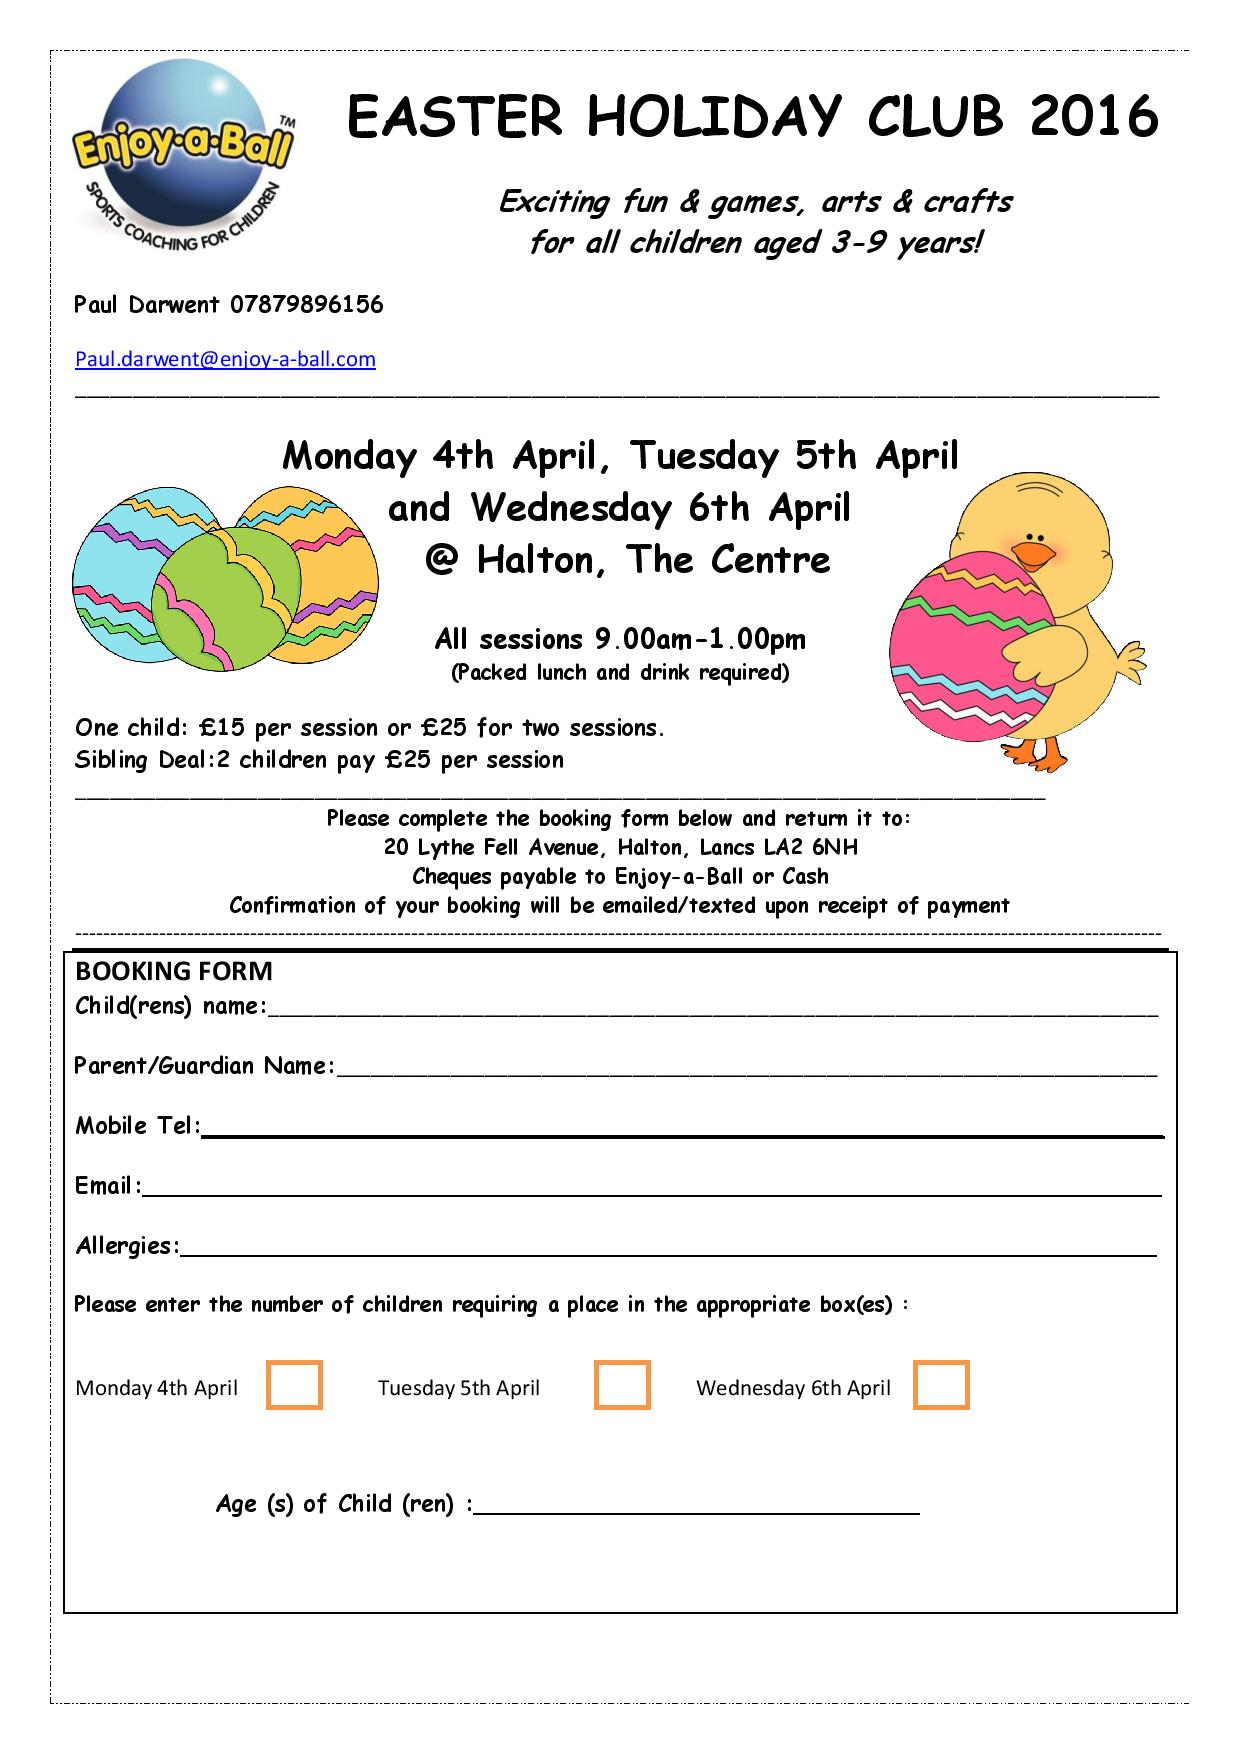 Easter Enjoy-a-Ball  booking form 2016-page-001